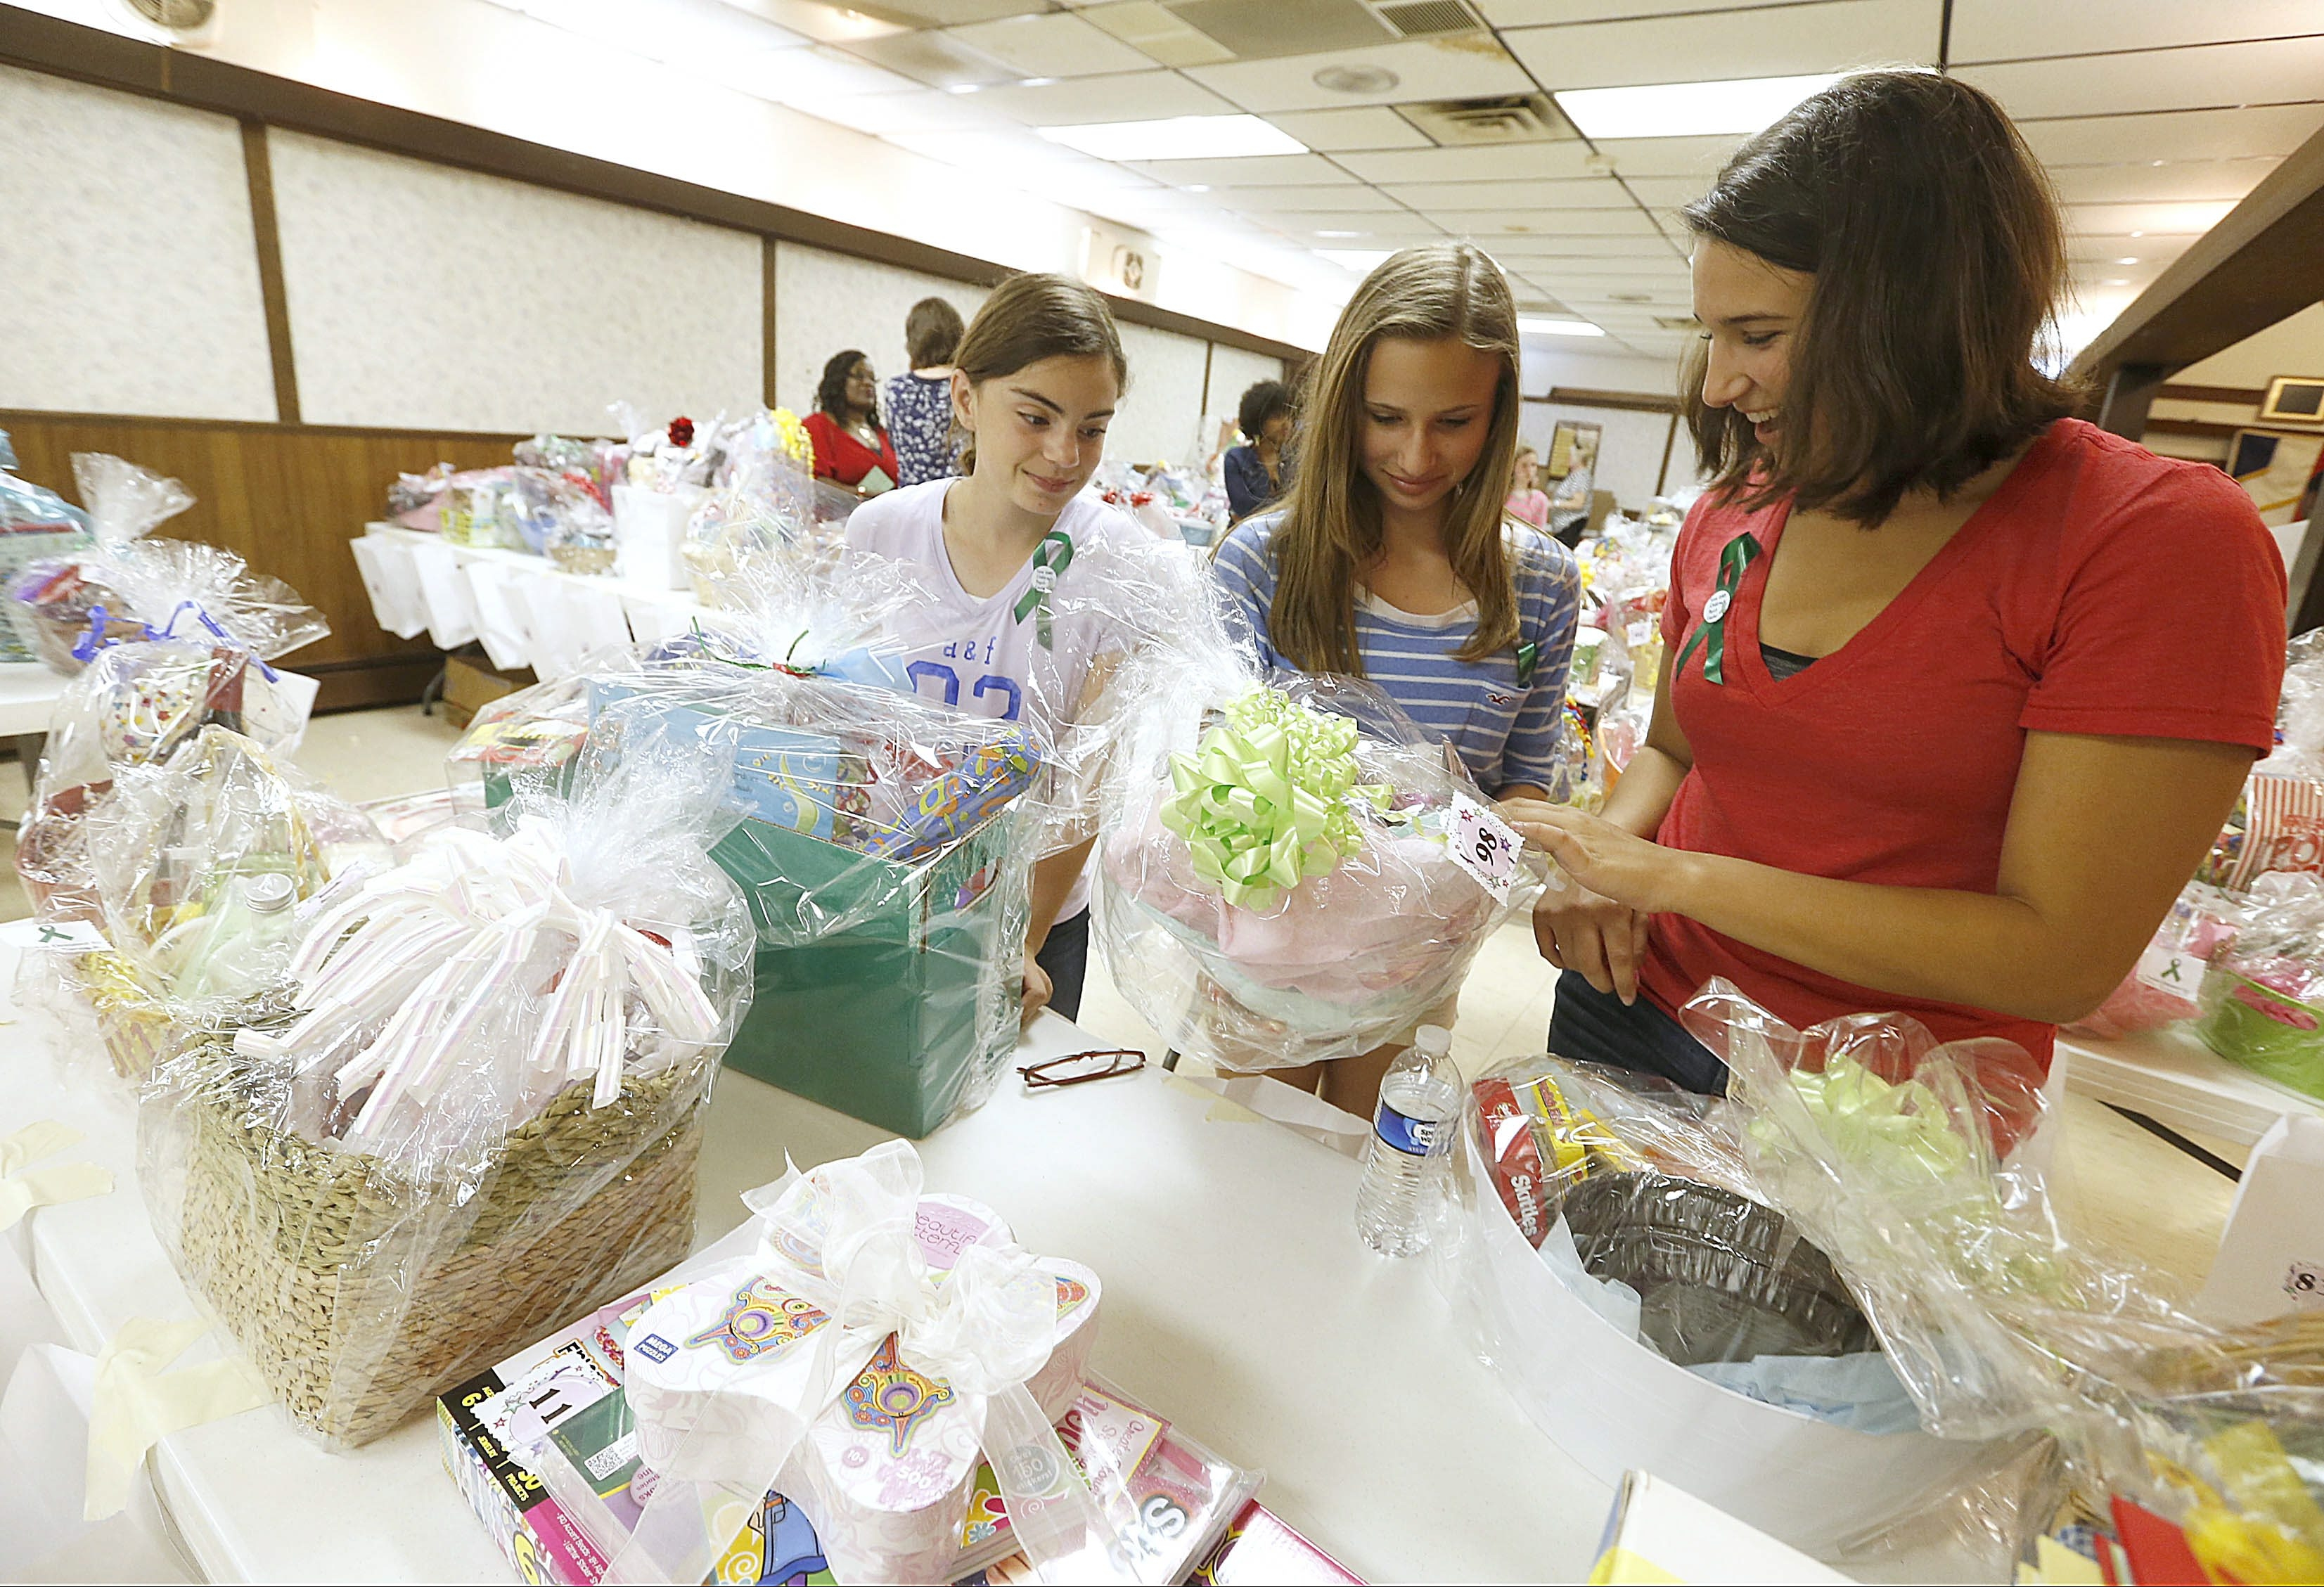 Maddy Moran, Anna Mucha and Julia Dipasquale look at raffle items at VFW Post 8113 during a benefit opposing the relocation of the Western New York Children's Psychiatric Center on Sunday.